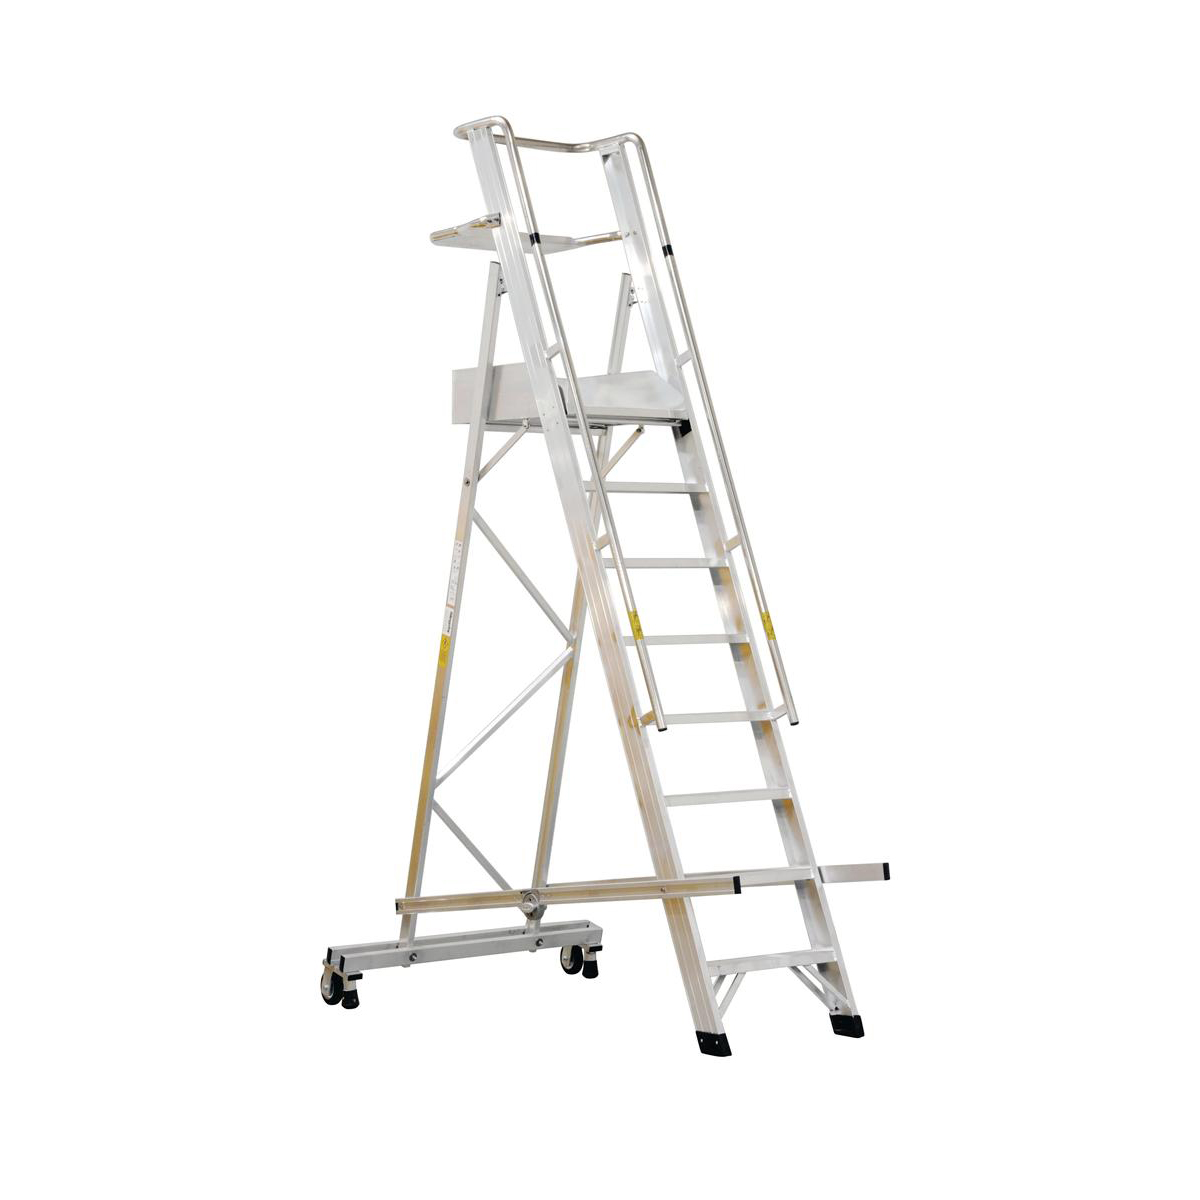 Platform Trucks Warehouse Ladder Mobile Folding 10 Tread Aluminium